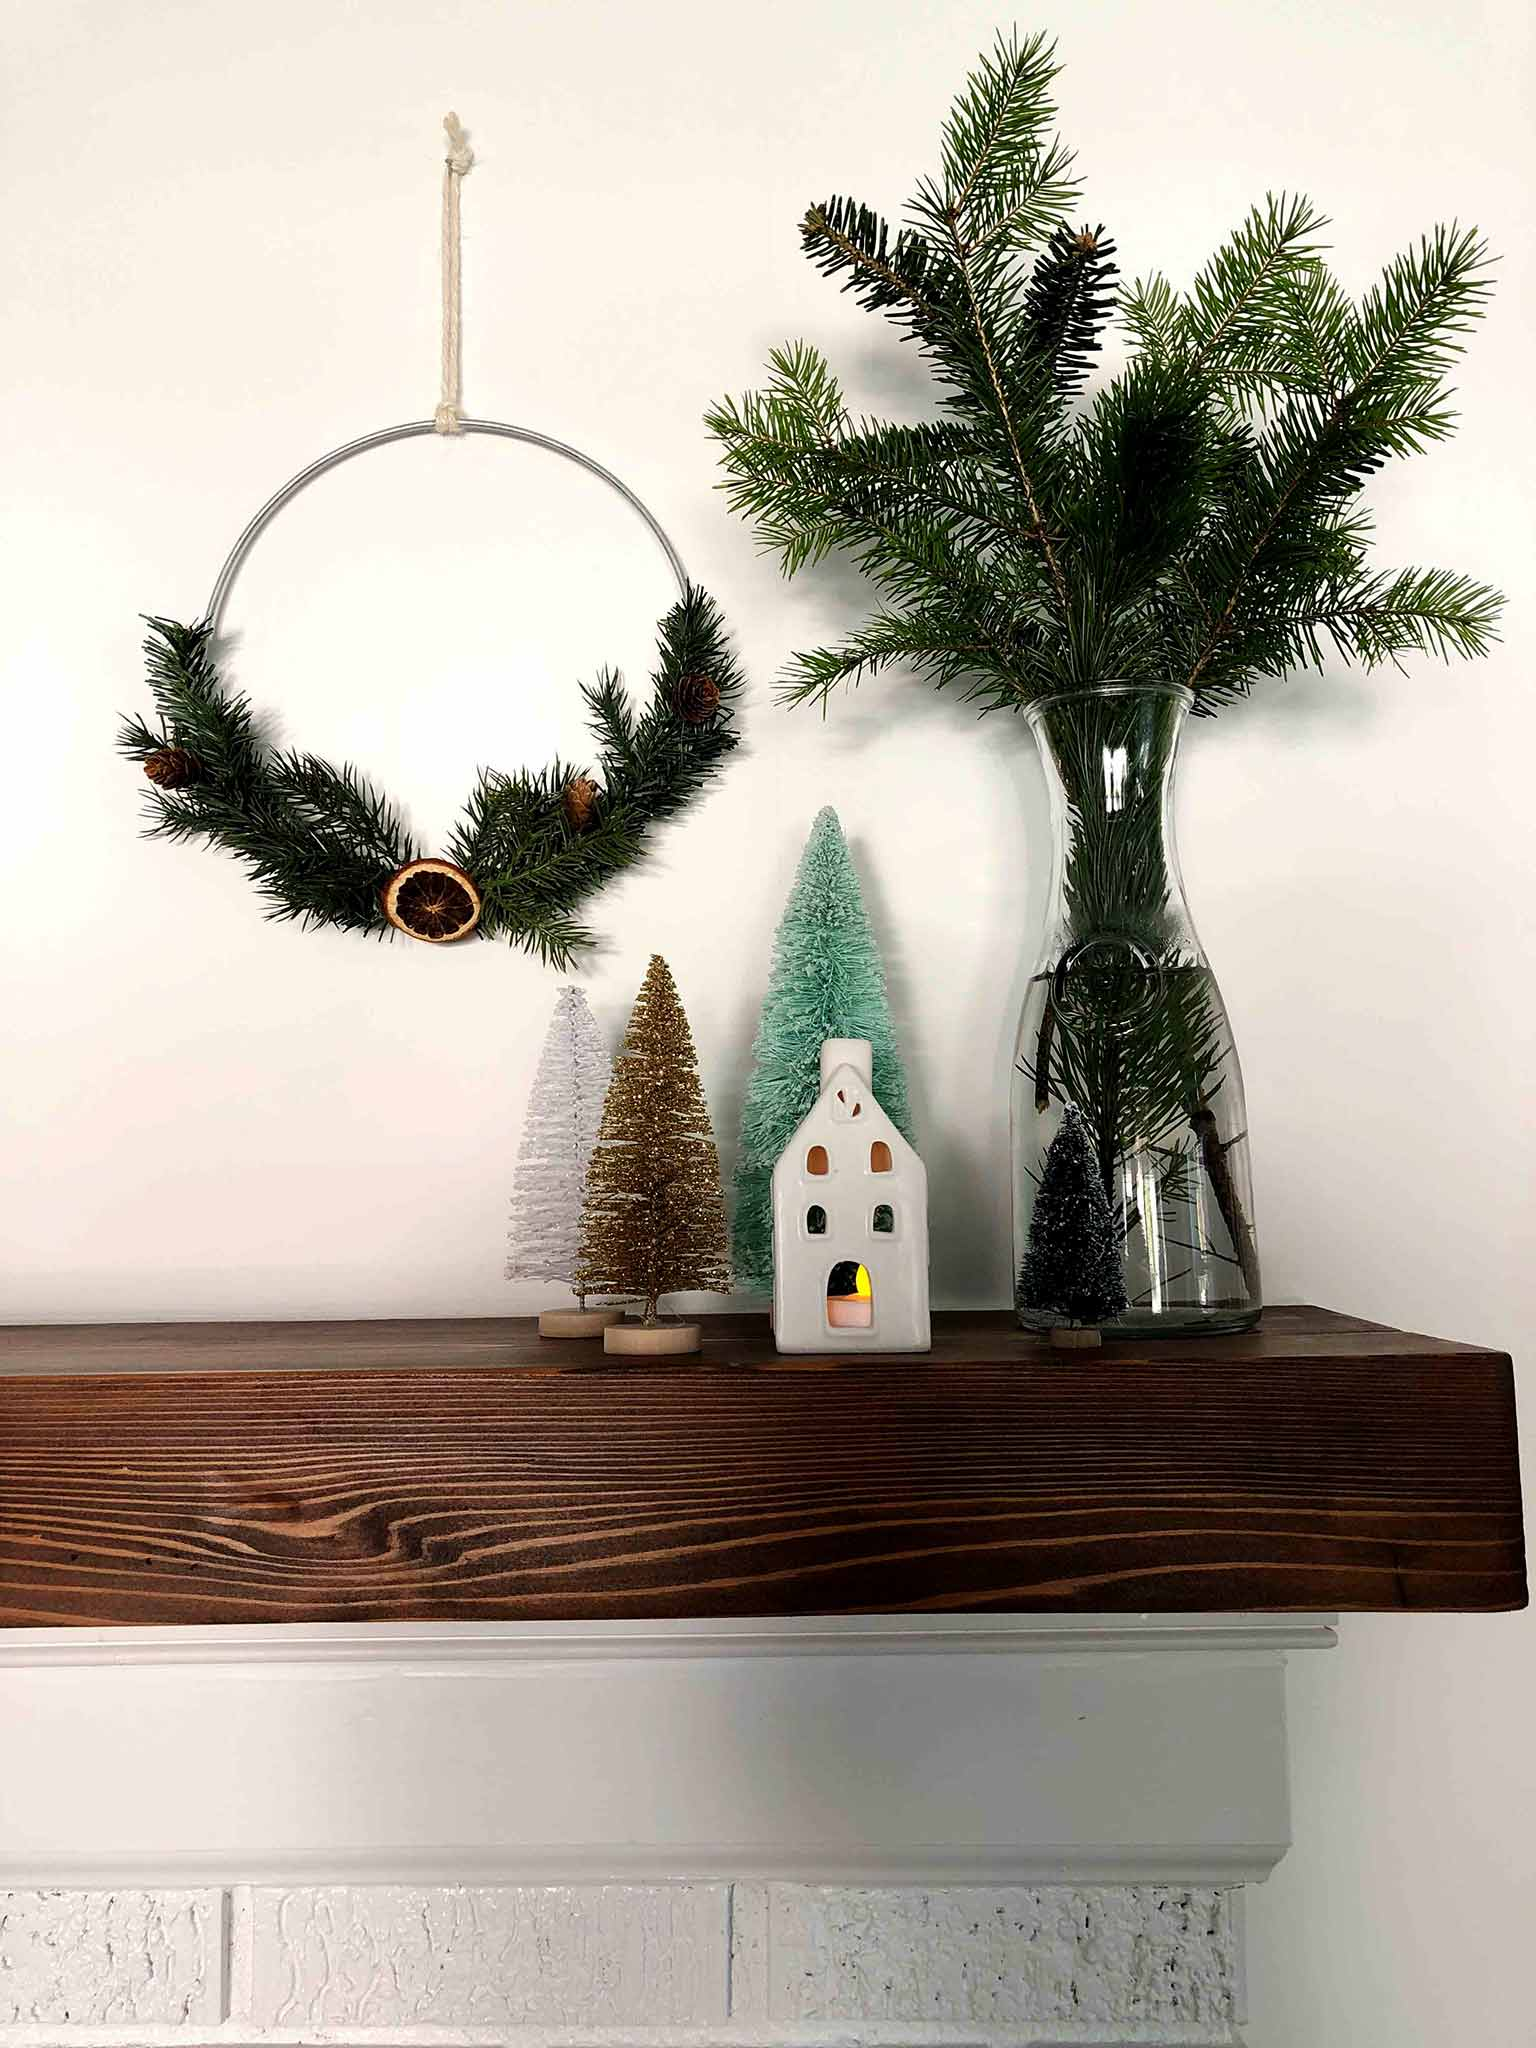 Mantel with hoop wreaths and bottle brush trees - Simple Yet Cozy Christmas Decor - That Homebird Life Blog #christmasdecor #christmasinspiration